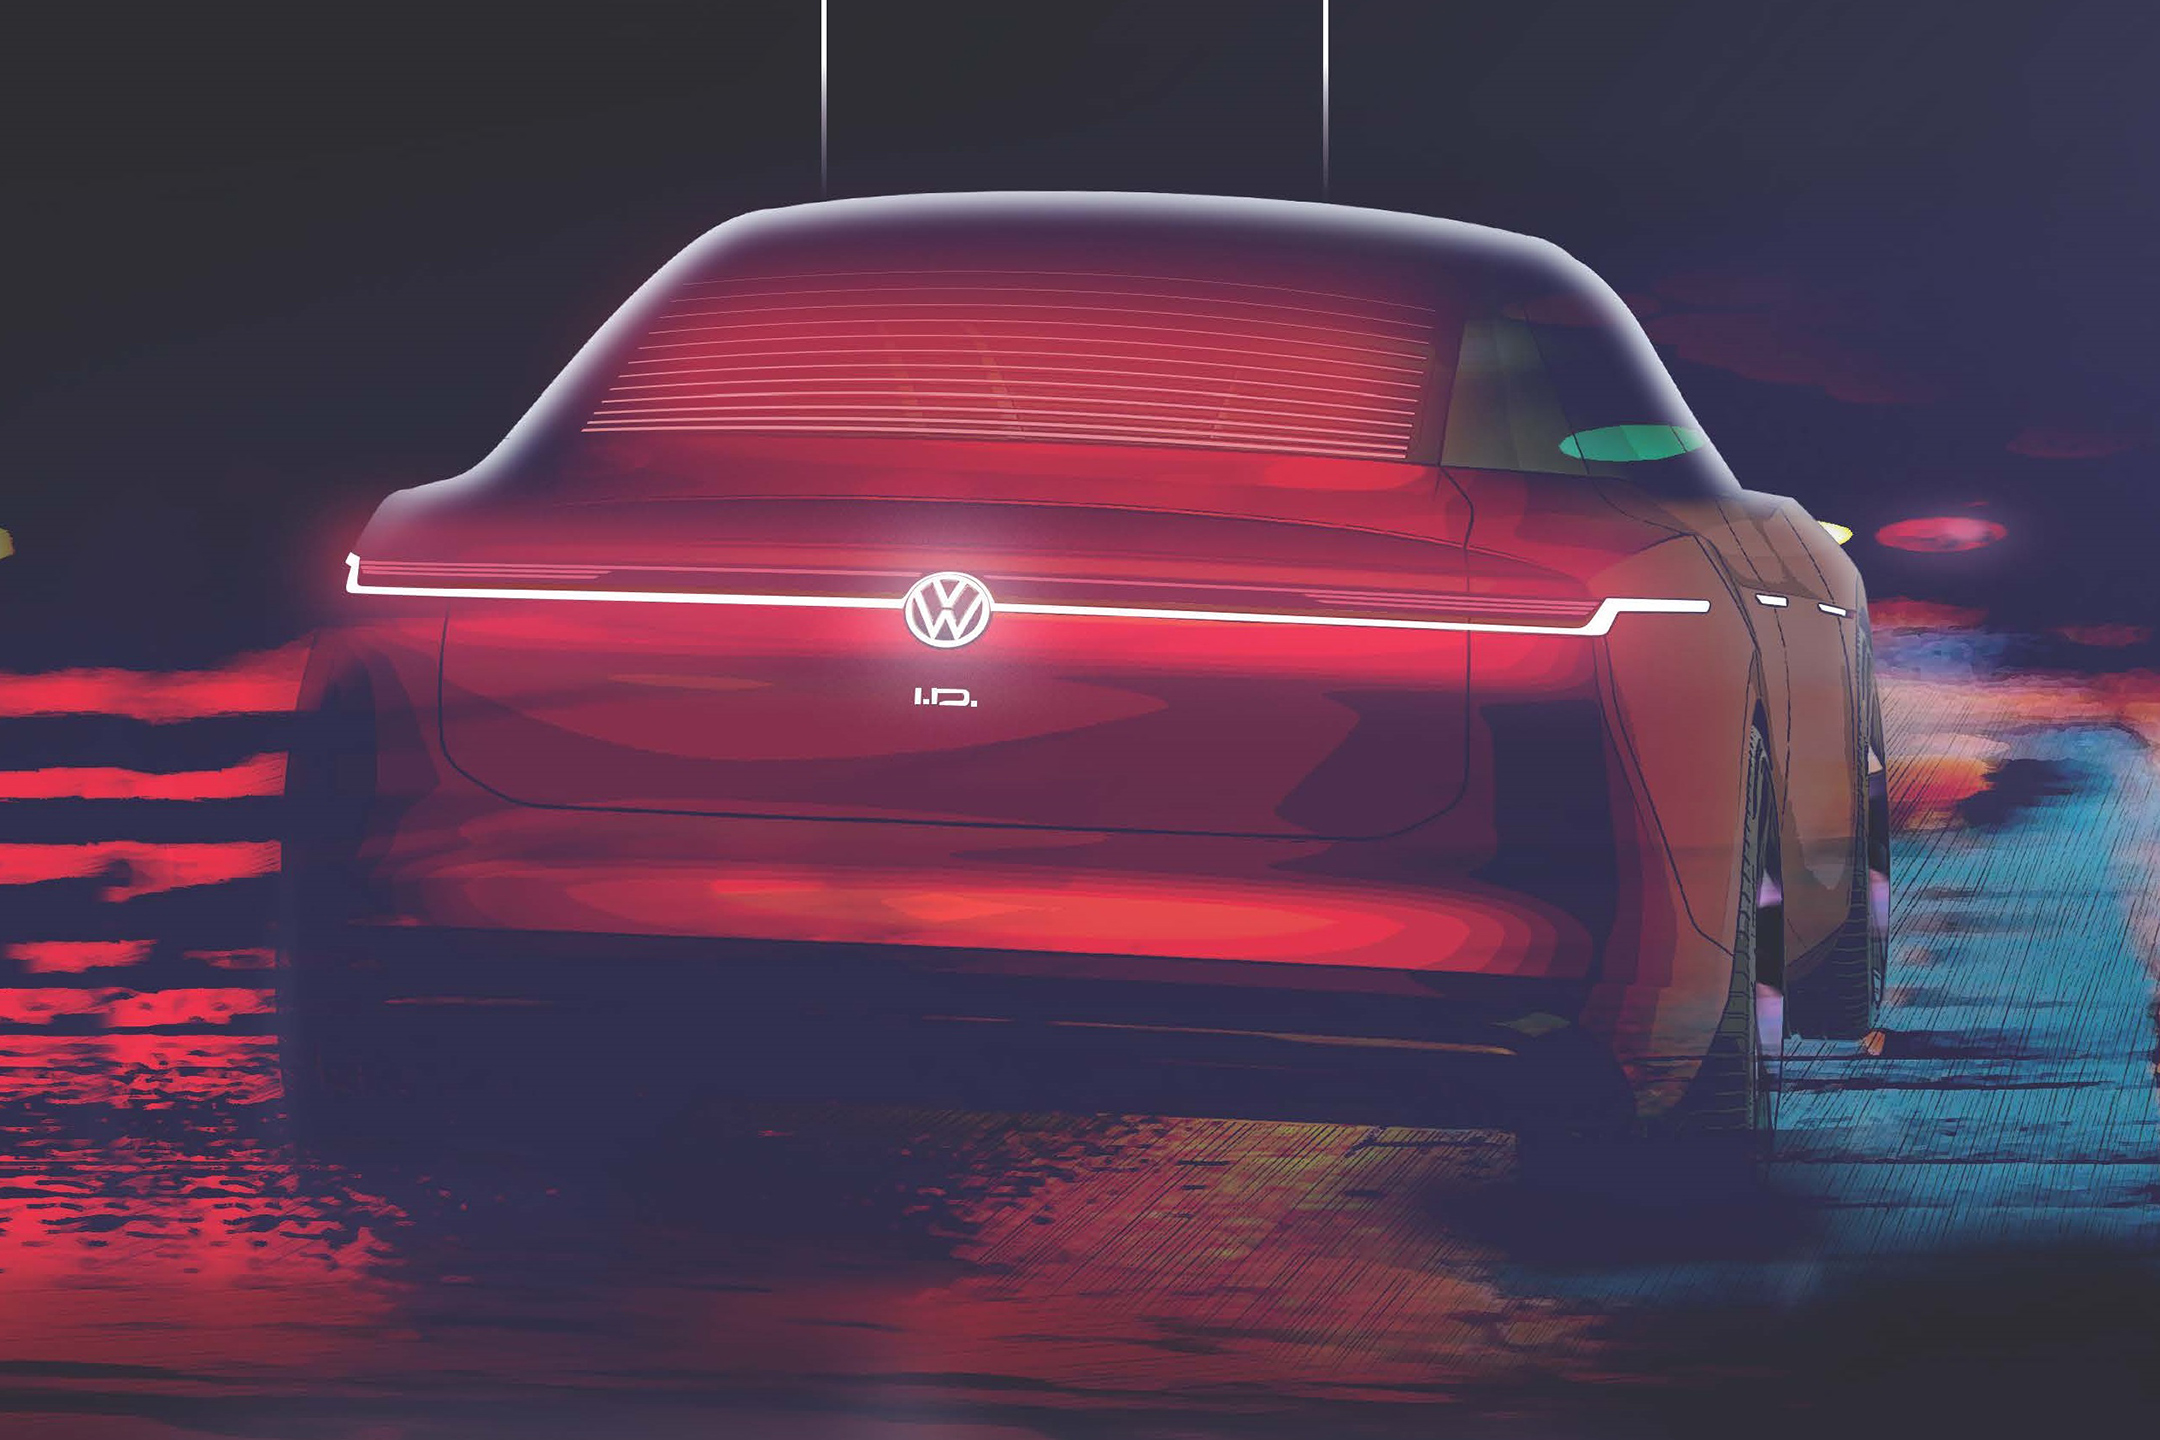 Must Show I.D.? Volkswagen to Flash Yet Another I.D. Concept in L.A.